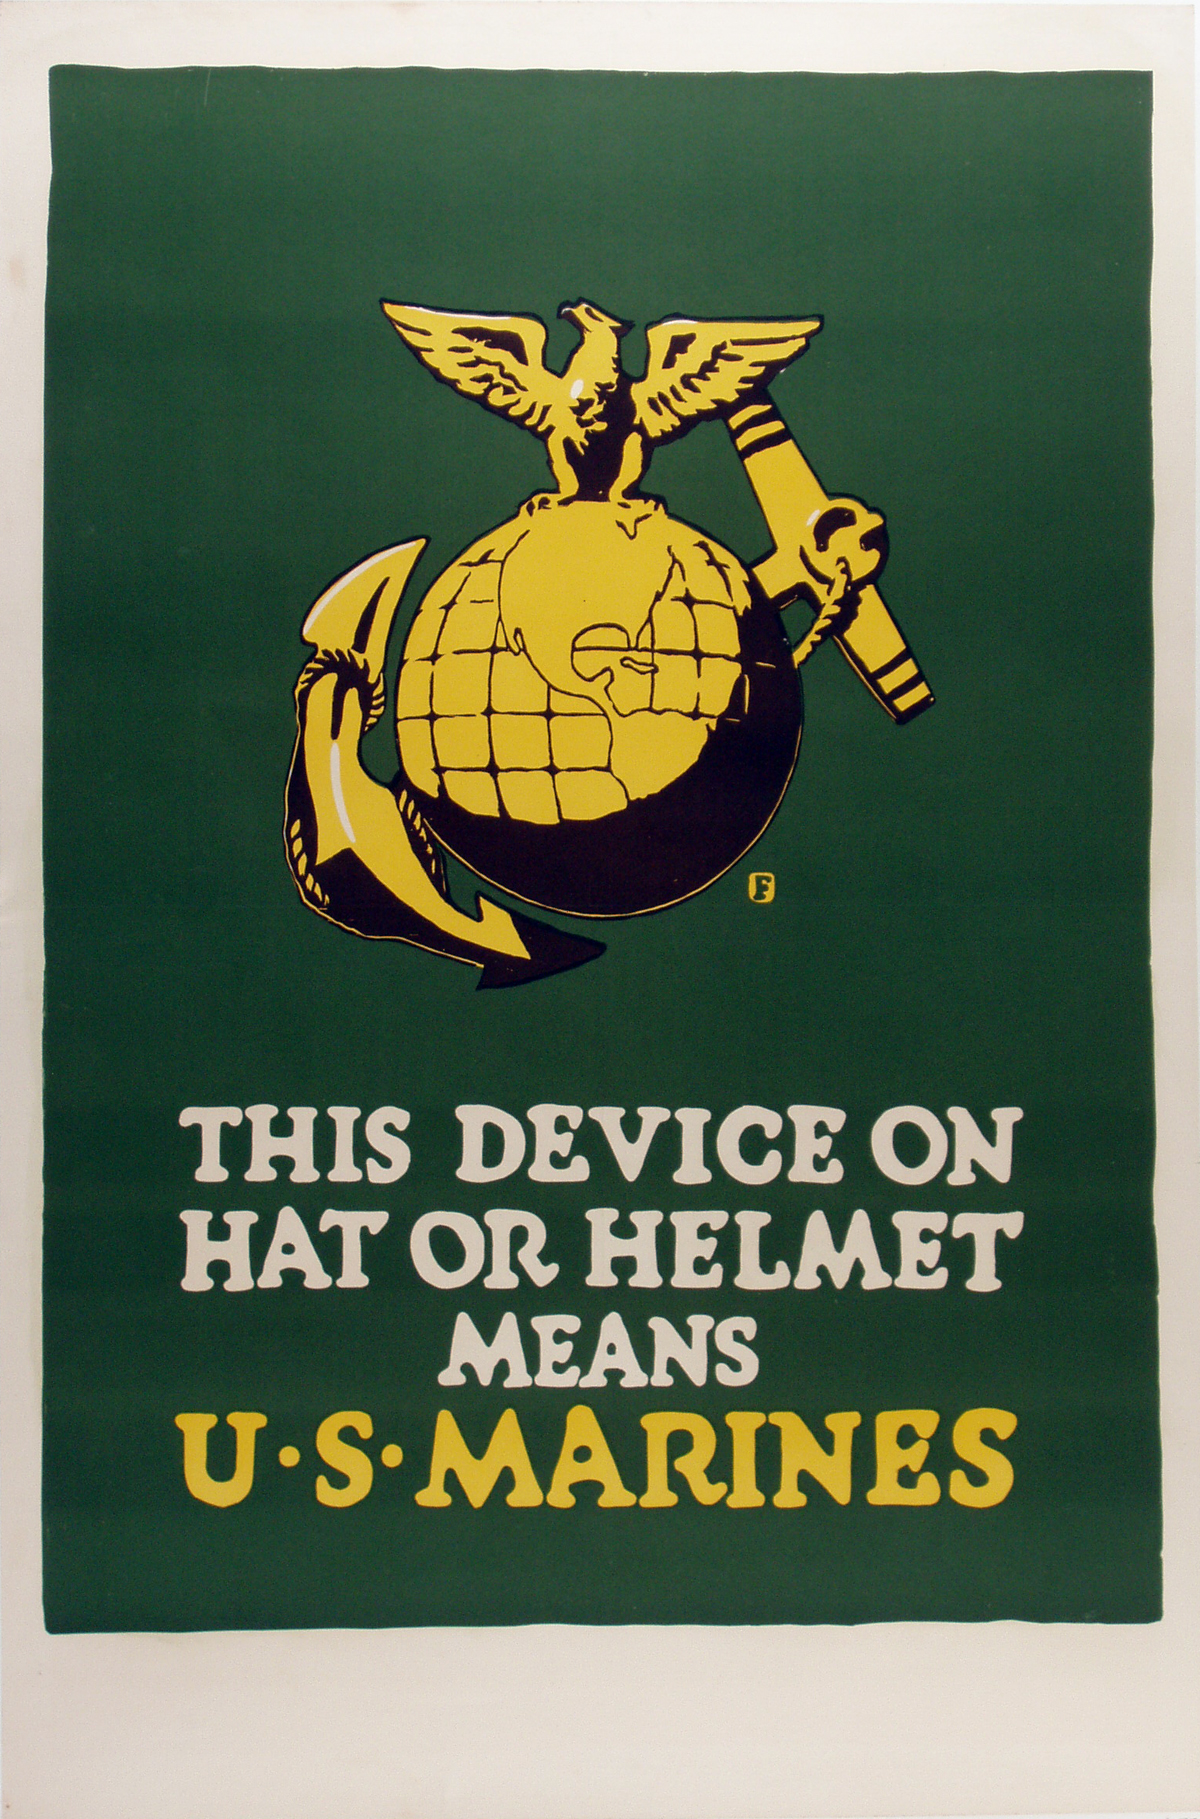 World War One Helmets and Vintage Military Posters ...